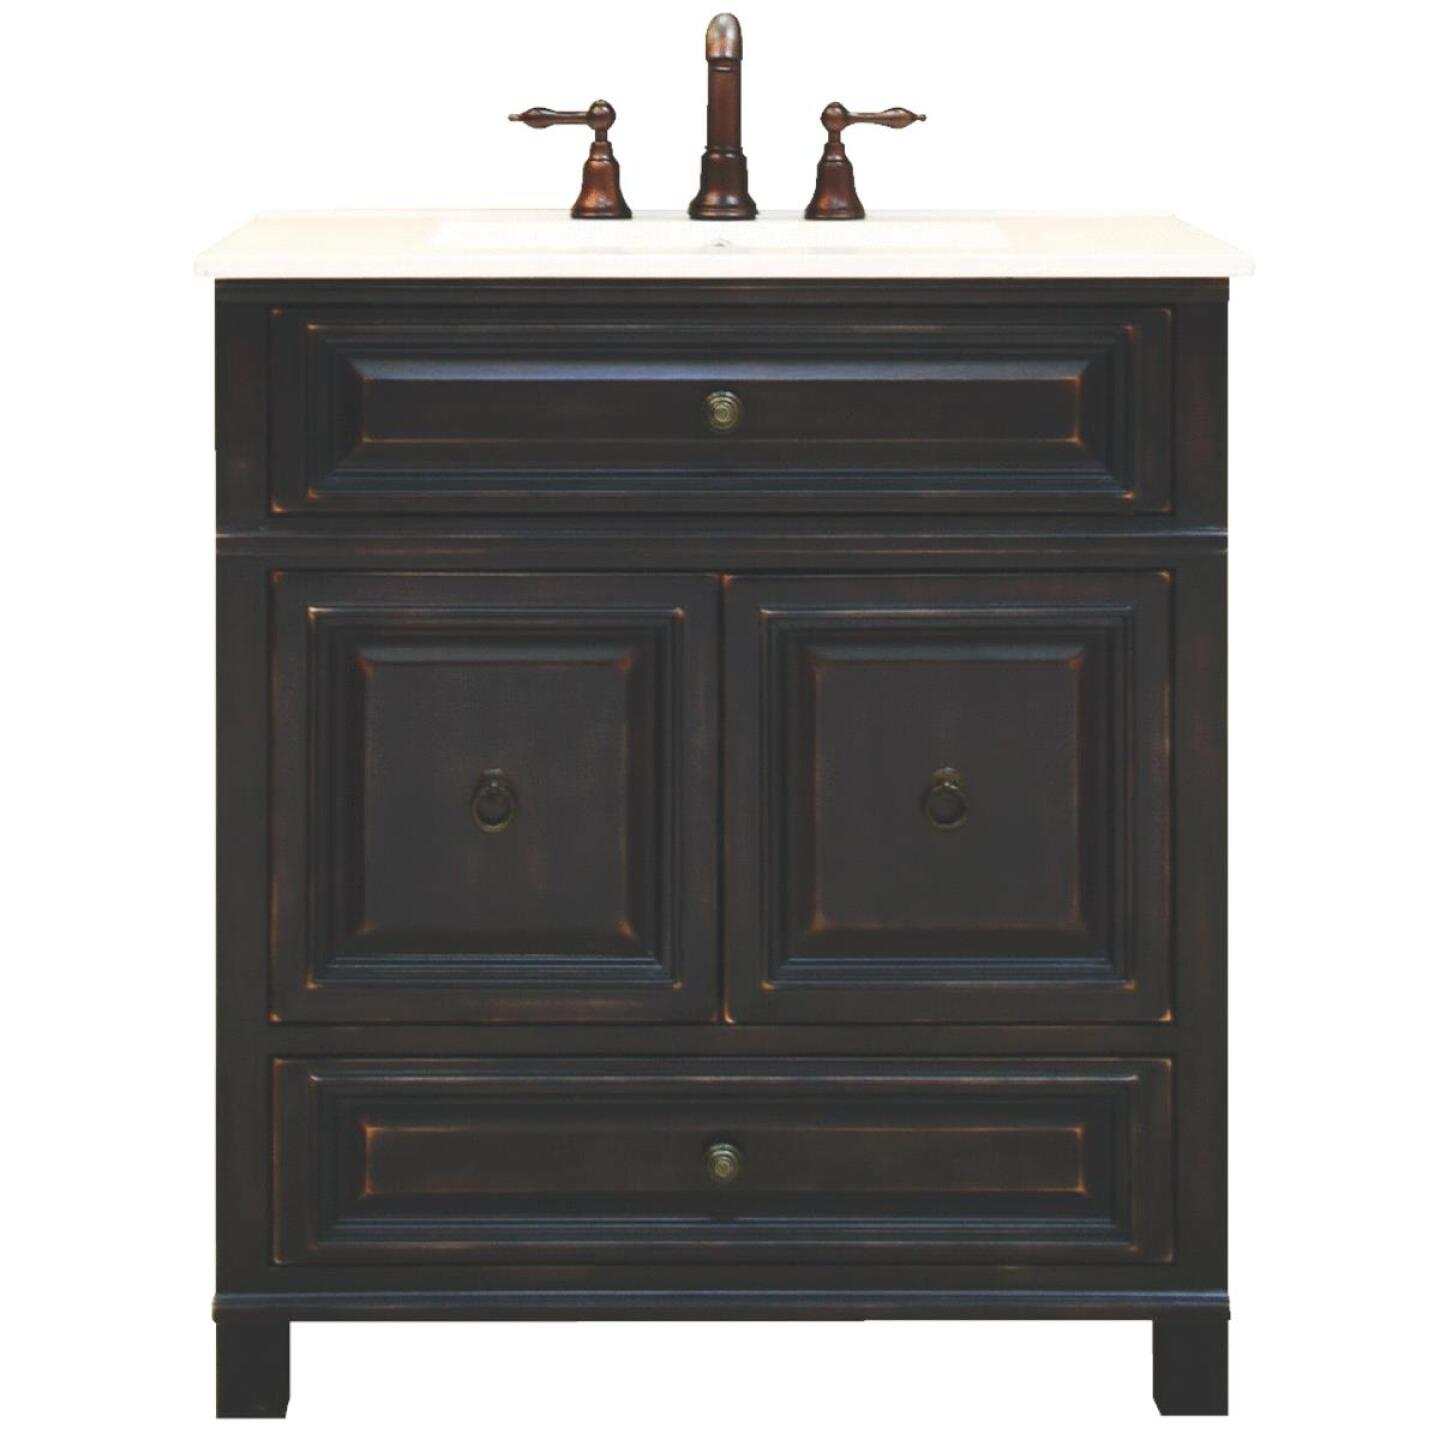 Sunny Wood Barton Hill Black Onyx 30 In. W x 34 In. H x 21 In. D Vanity Base, 2 Door/1 Drawer Image 150